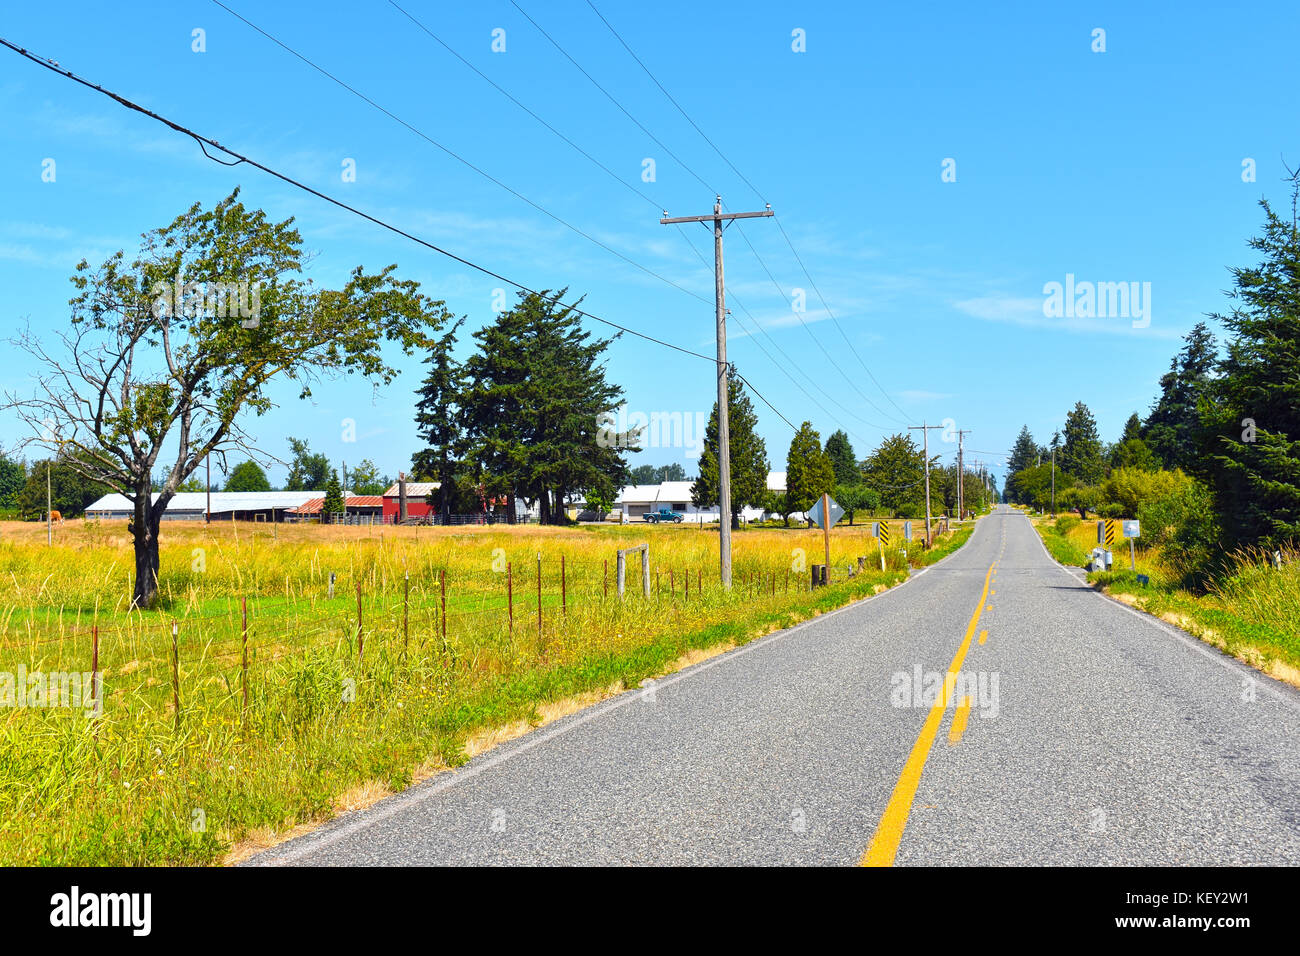 A long road in the country on a beautiful sunny day with a farm on the left side of the road.  There are old telephone - Stock Image